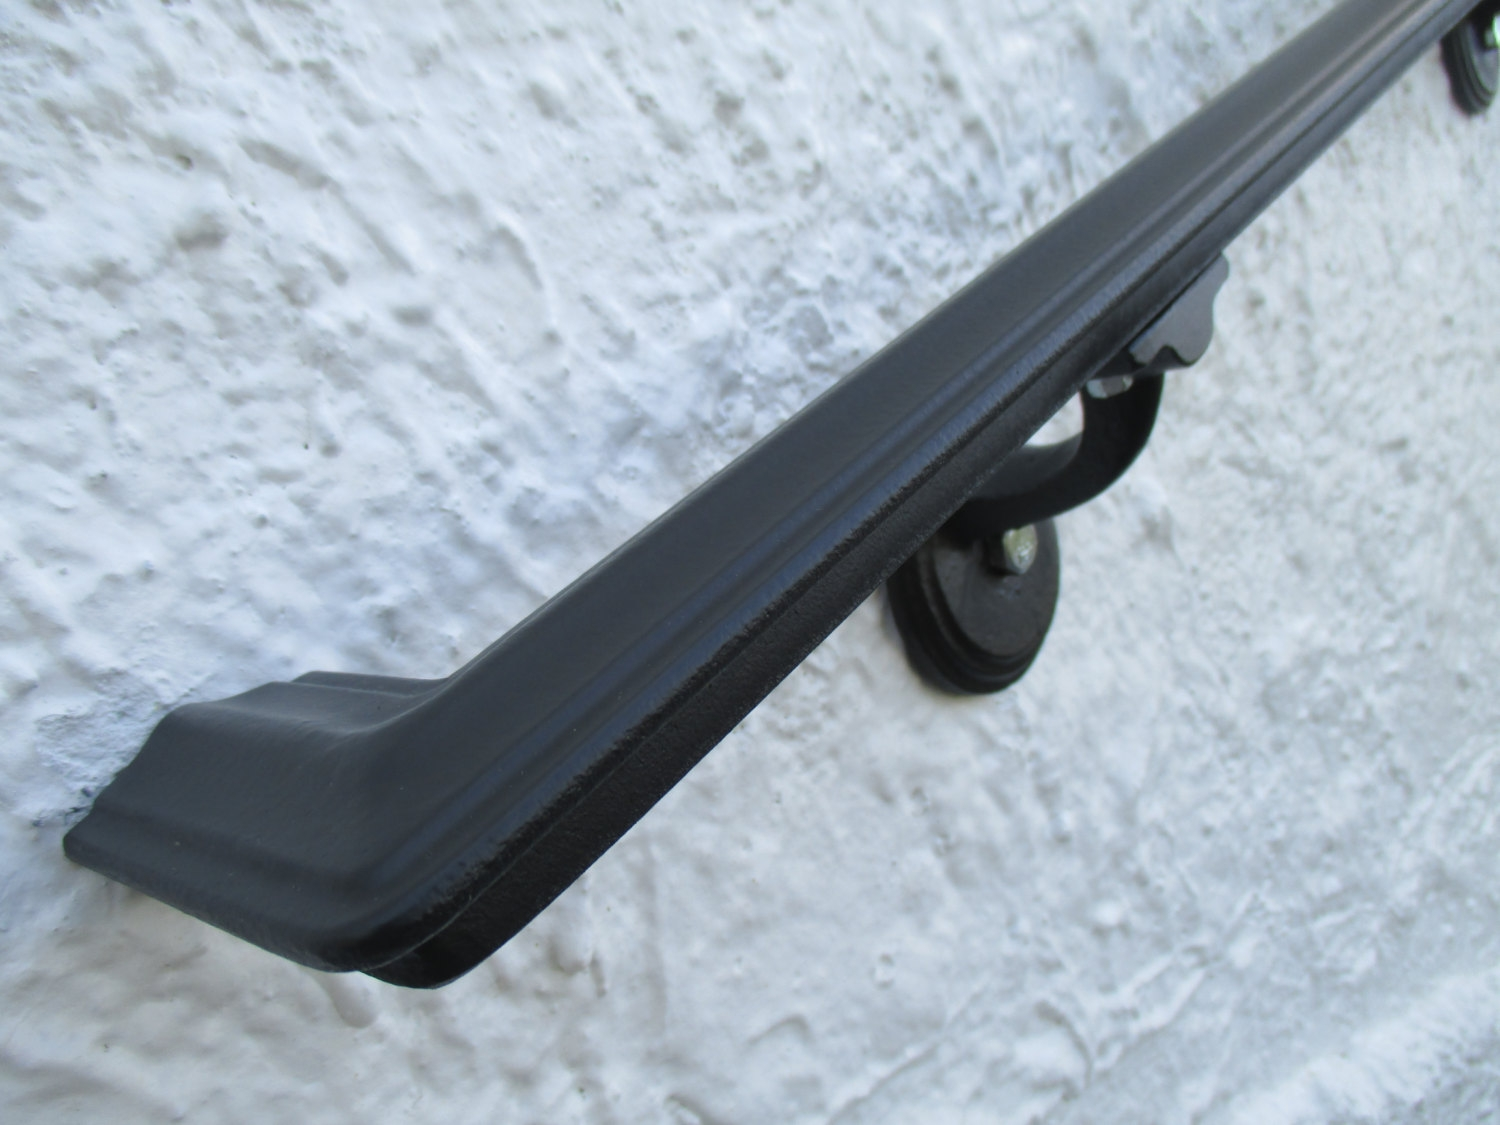 3 Ft Wrought Iron Ada Wall Mount Hand Rail Modern Design   Wrought Iron Hand Railing For Steps